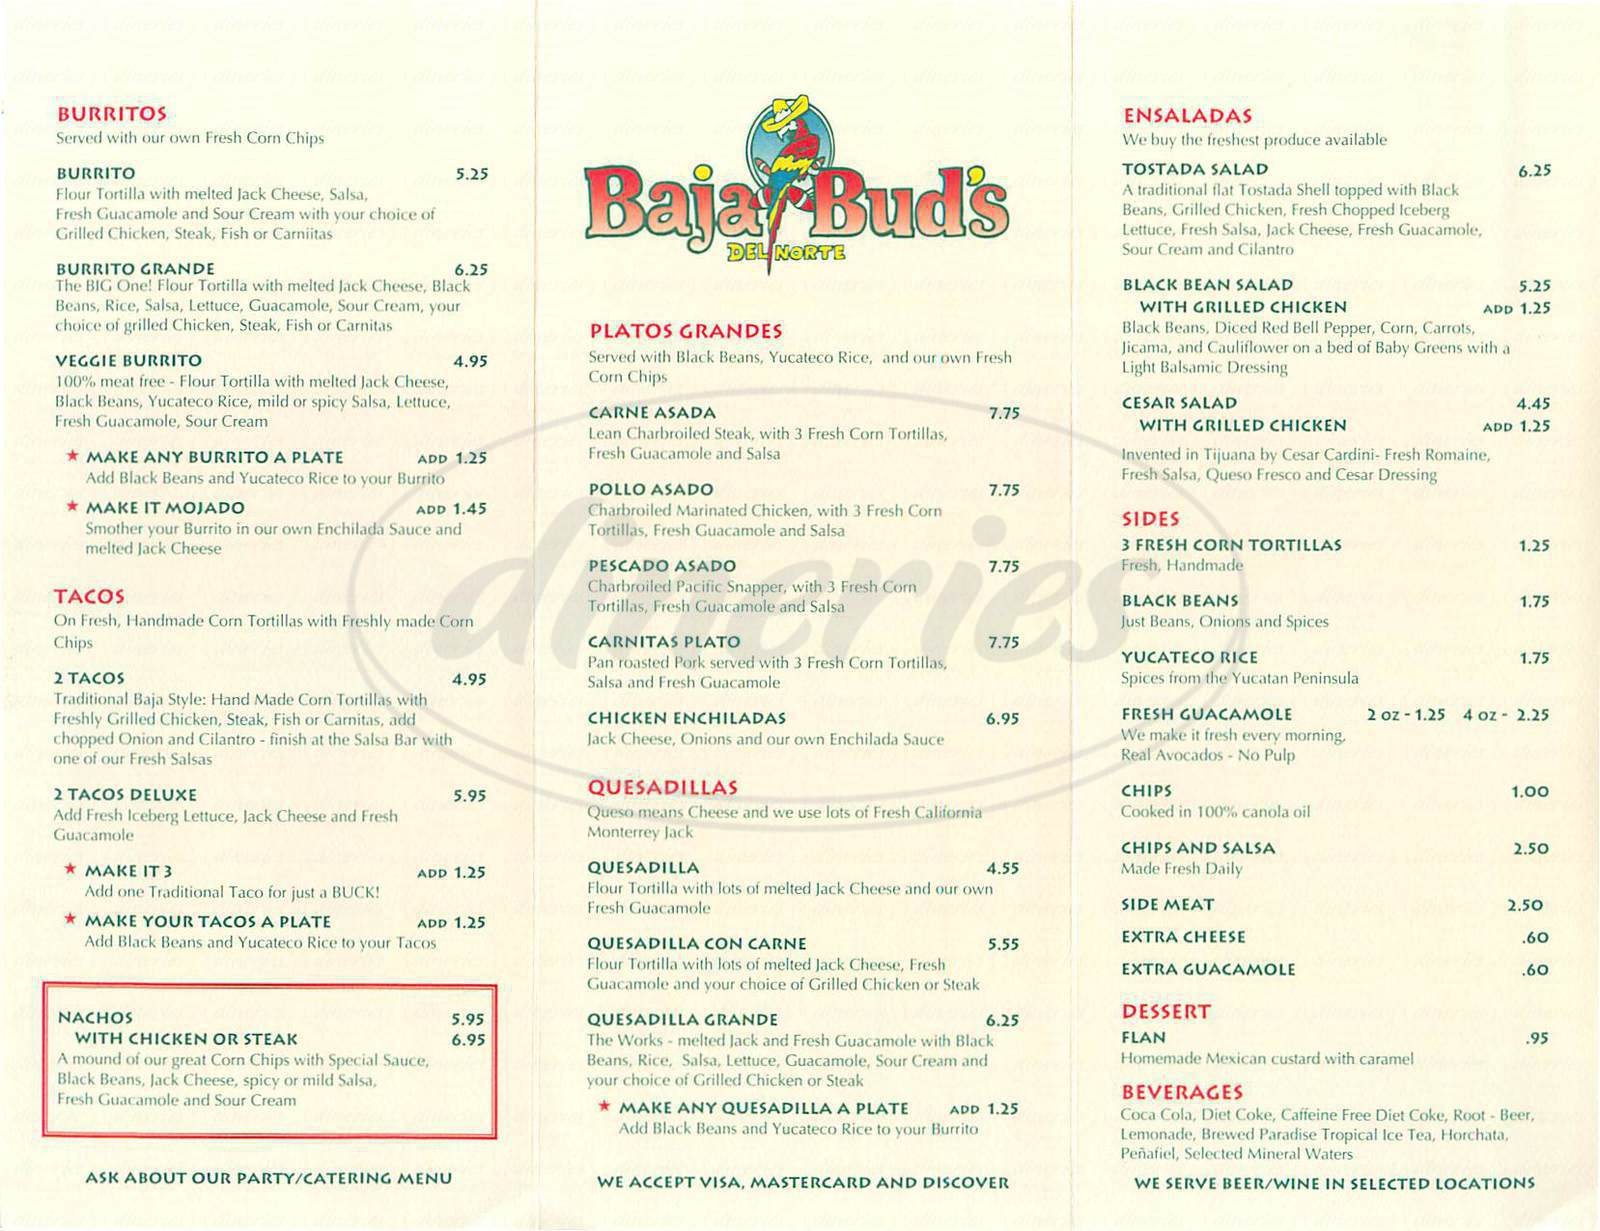 menu for Baja Buds